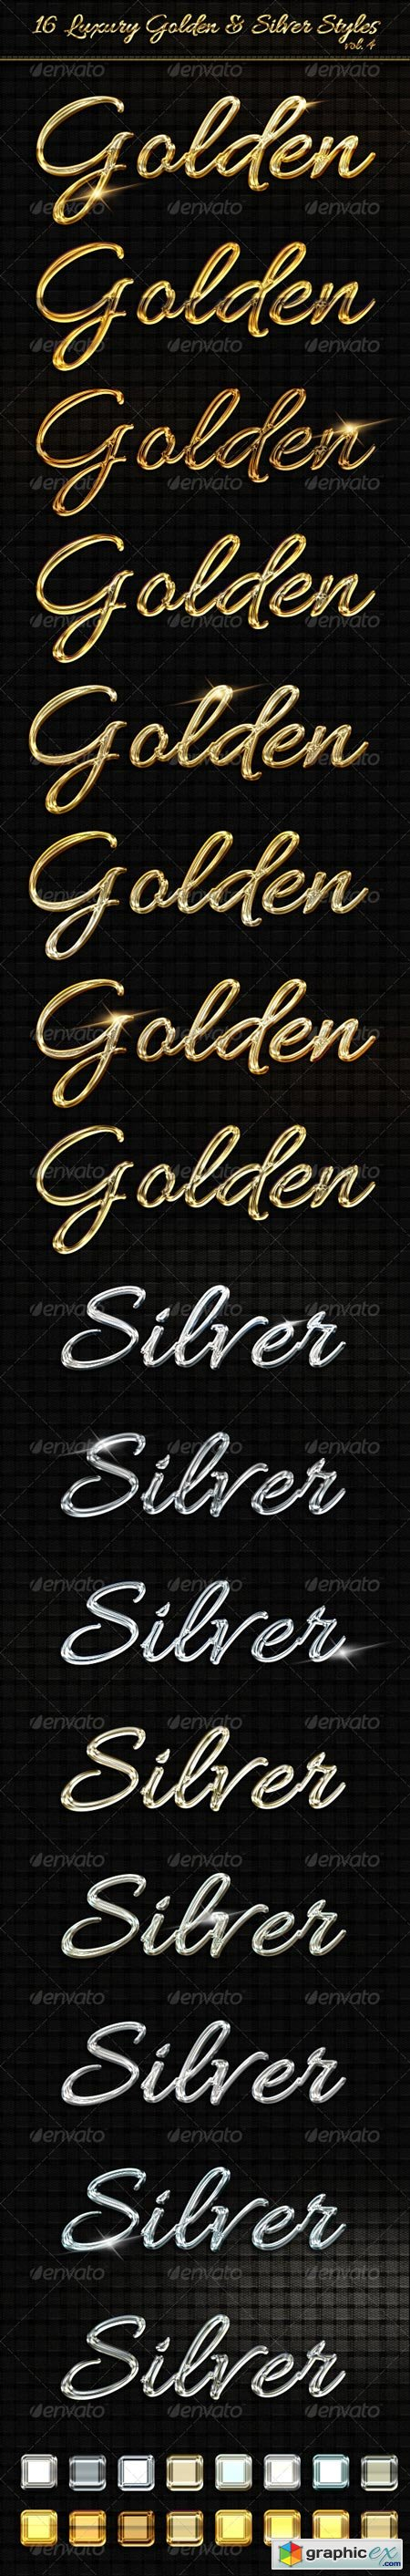 16 Luxury Golden & Silver Text Styles vol4 6559837